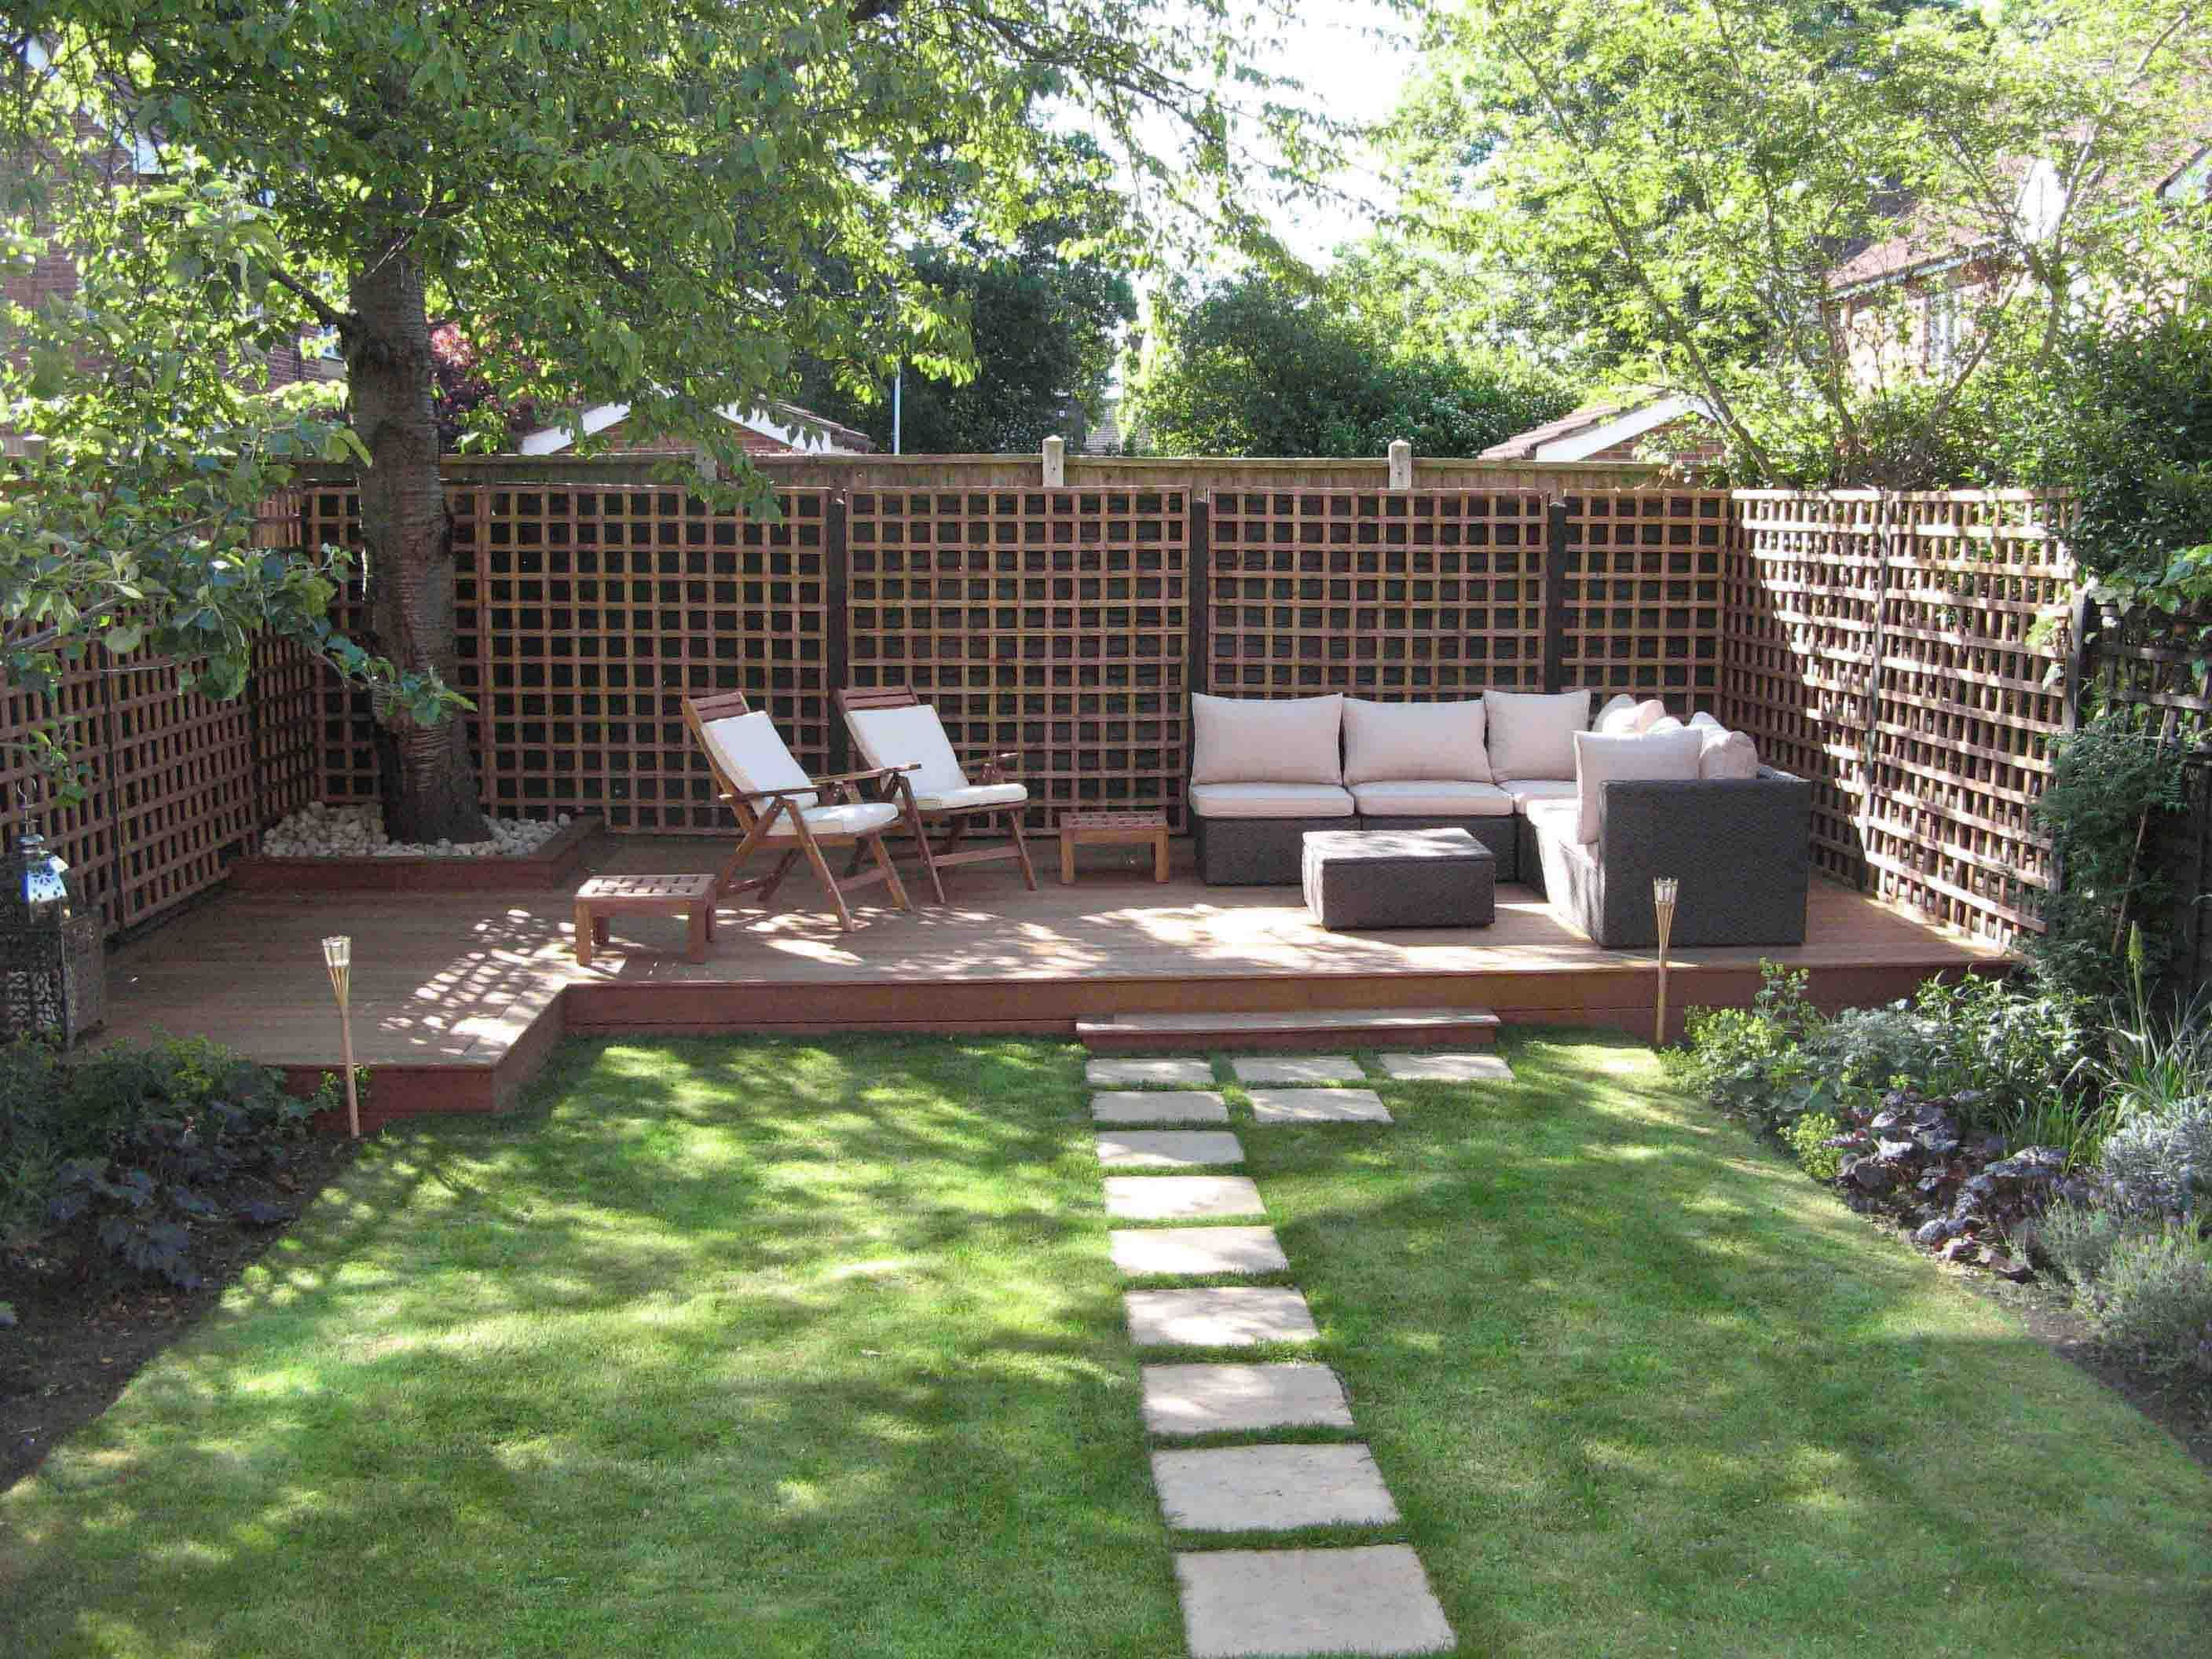 Backyard Concrete Patio Ideas Large And Beautiful Photos Photo - Backyard concrete patio ideas